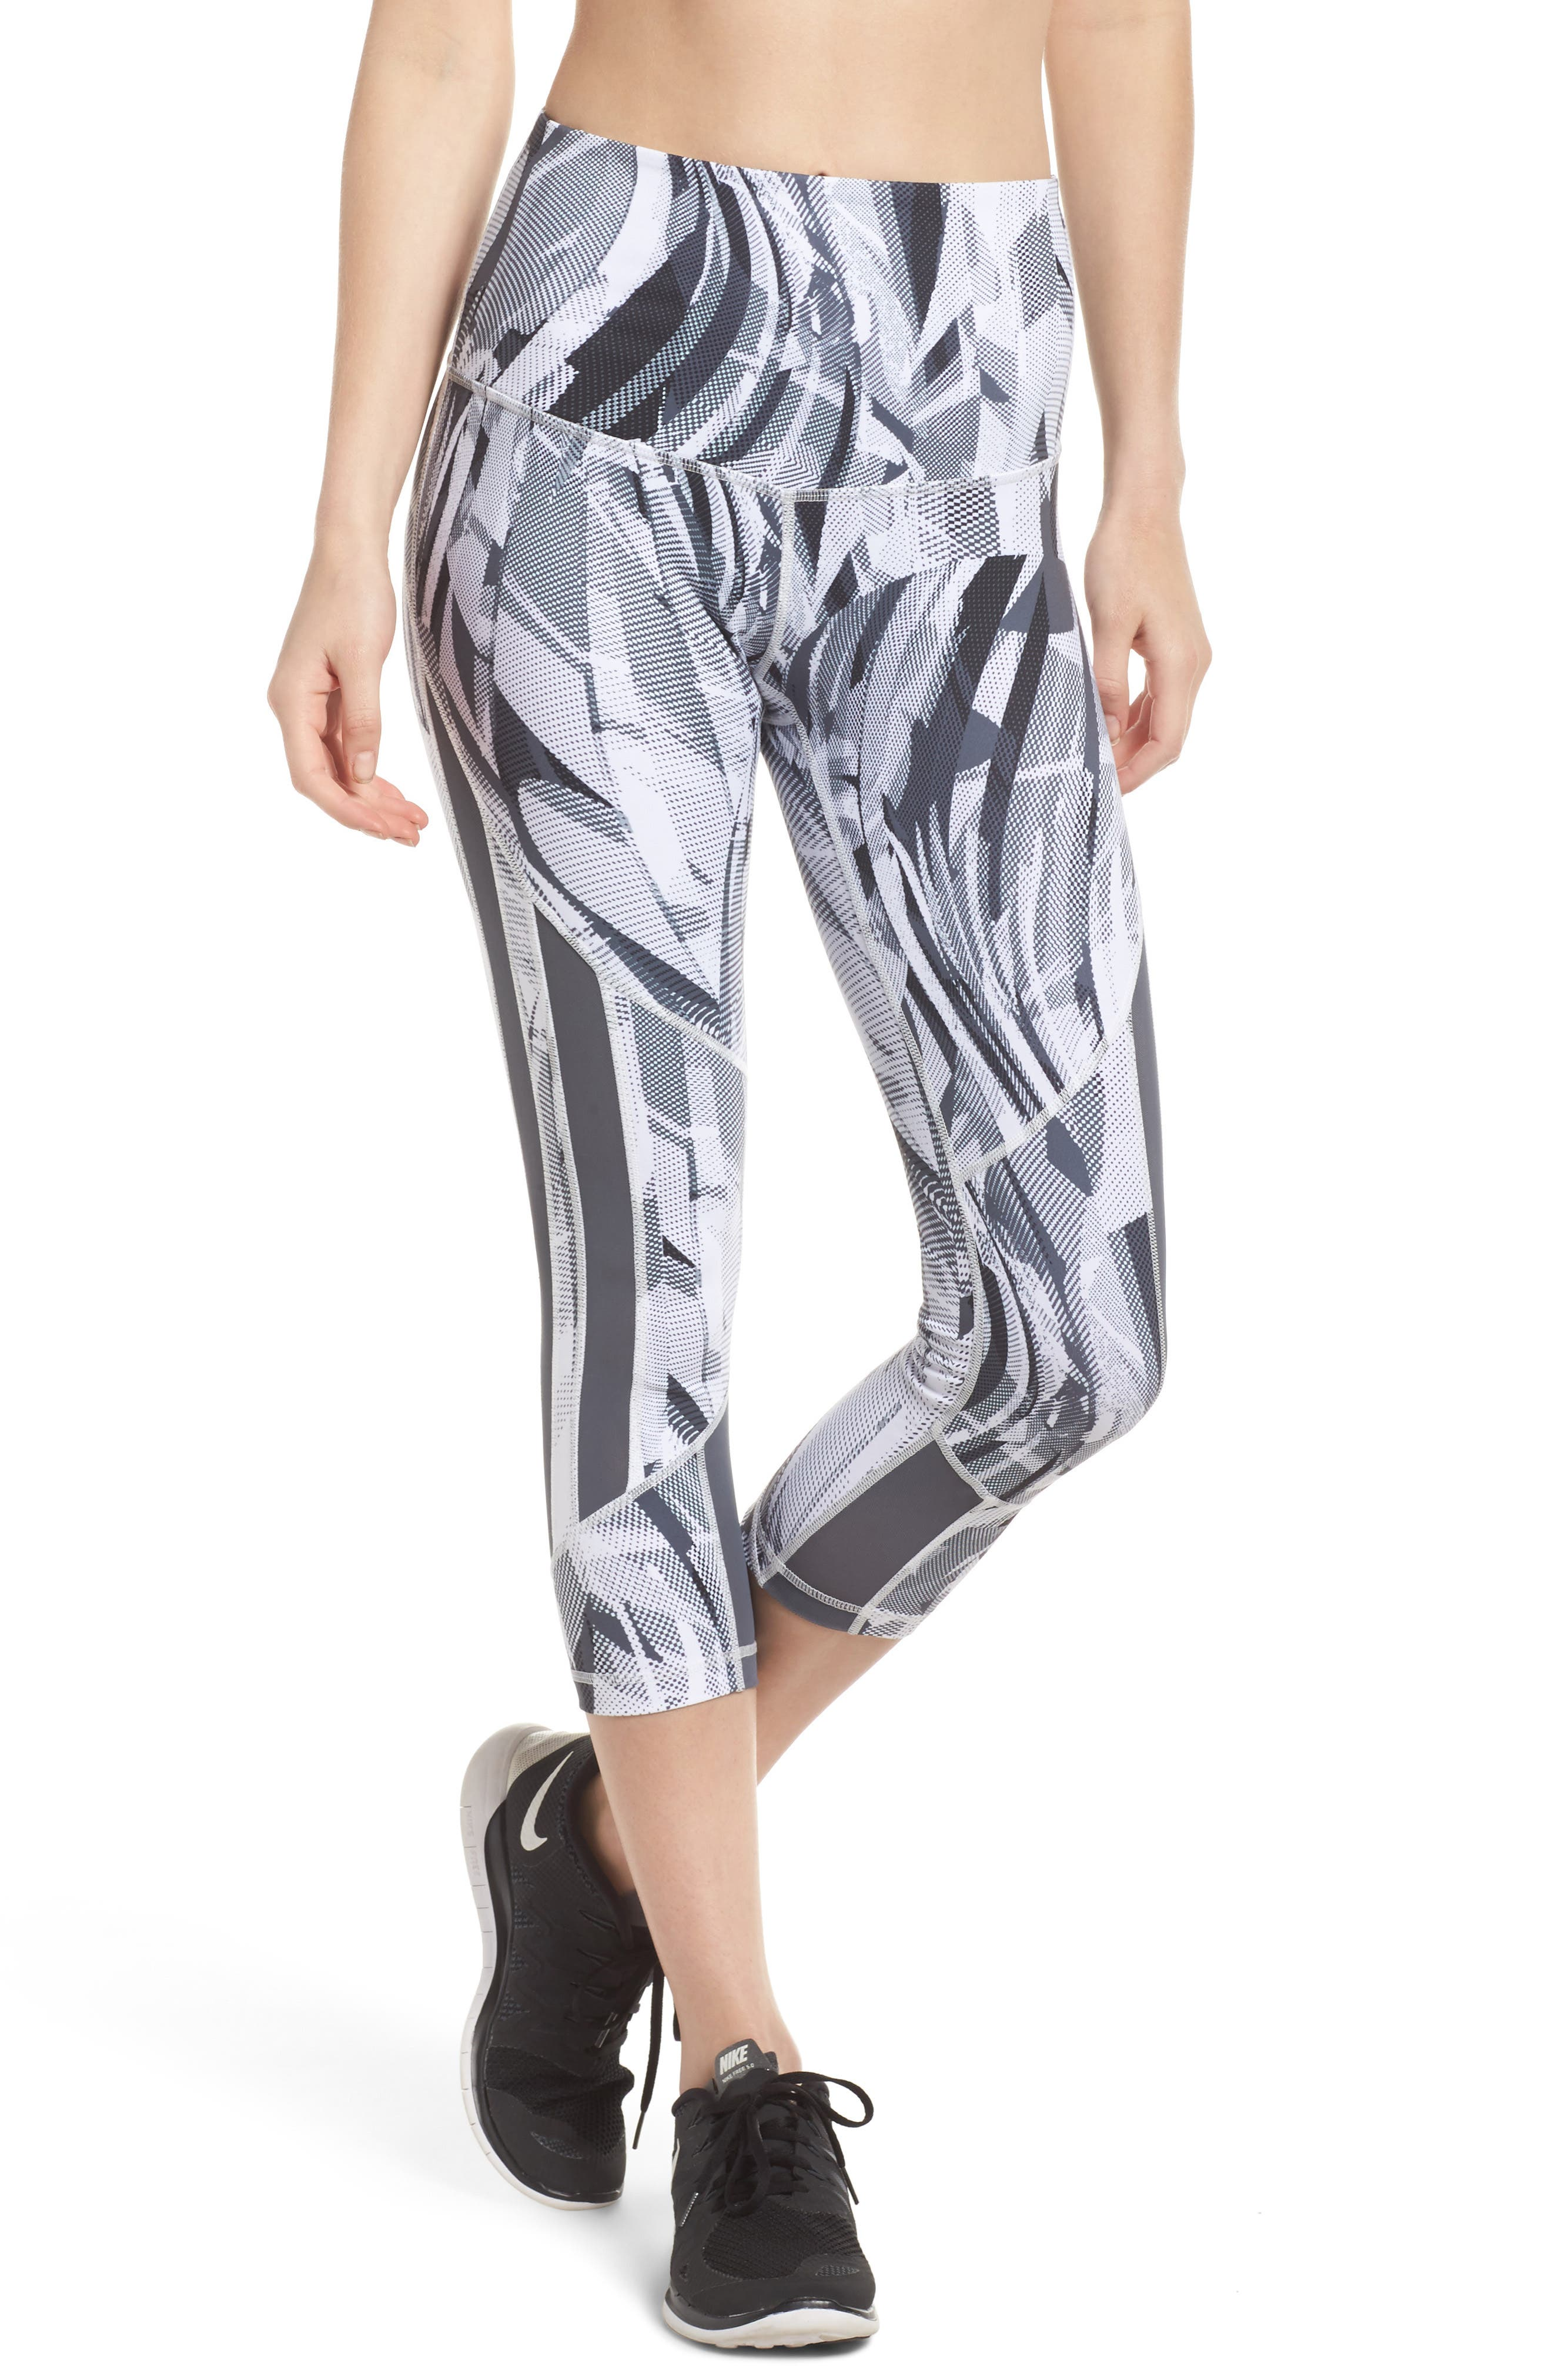 Sheer to There High Waist Crop Leggings,                             Main thumbnail 1, color,                             White Atmospheric Camo Print